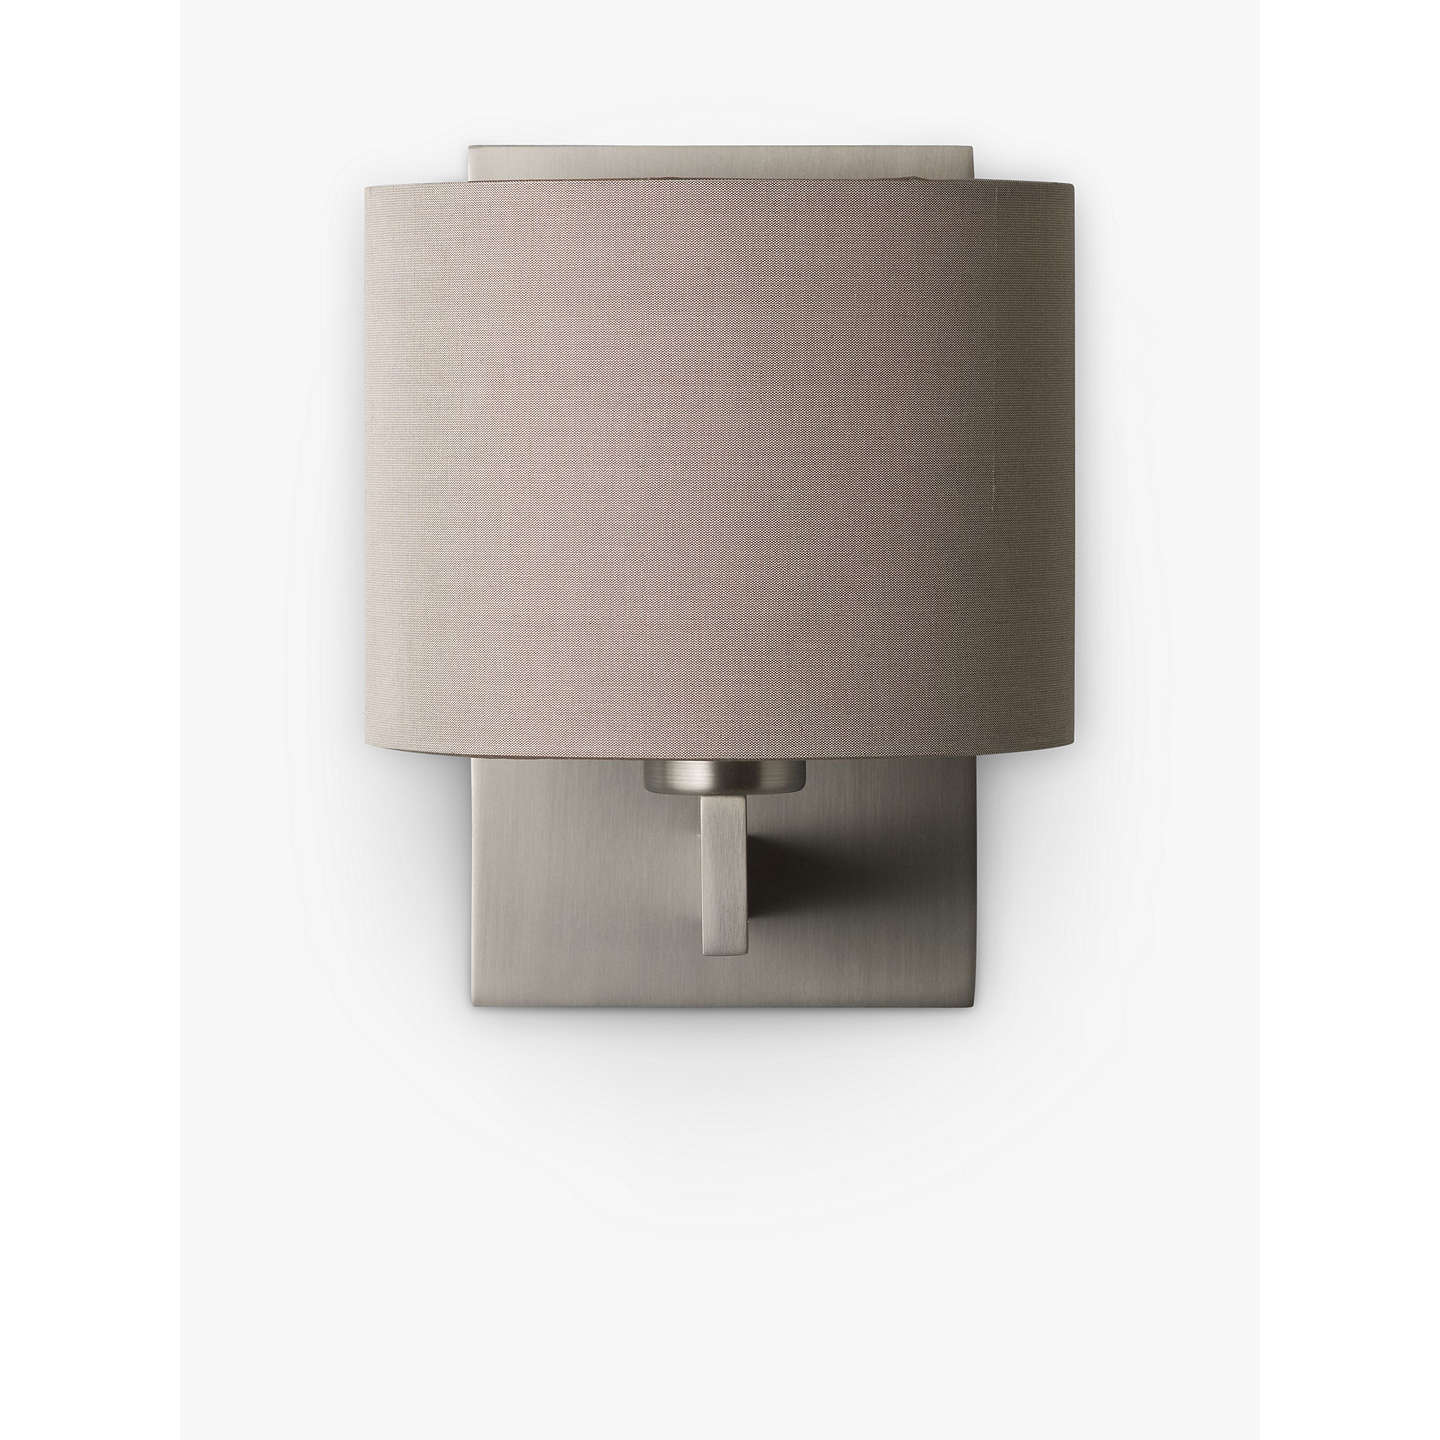 Astro olan wall light with silk shade nickeloyster at john lewis buyastro olan wall light with silk shade nickeloyster online at johnlewis aloadofball Choice Image